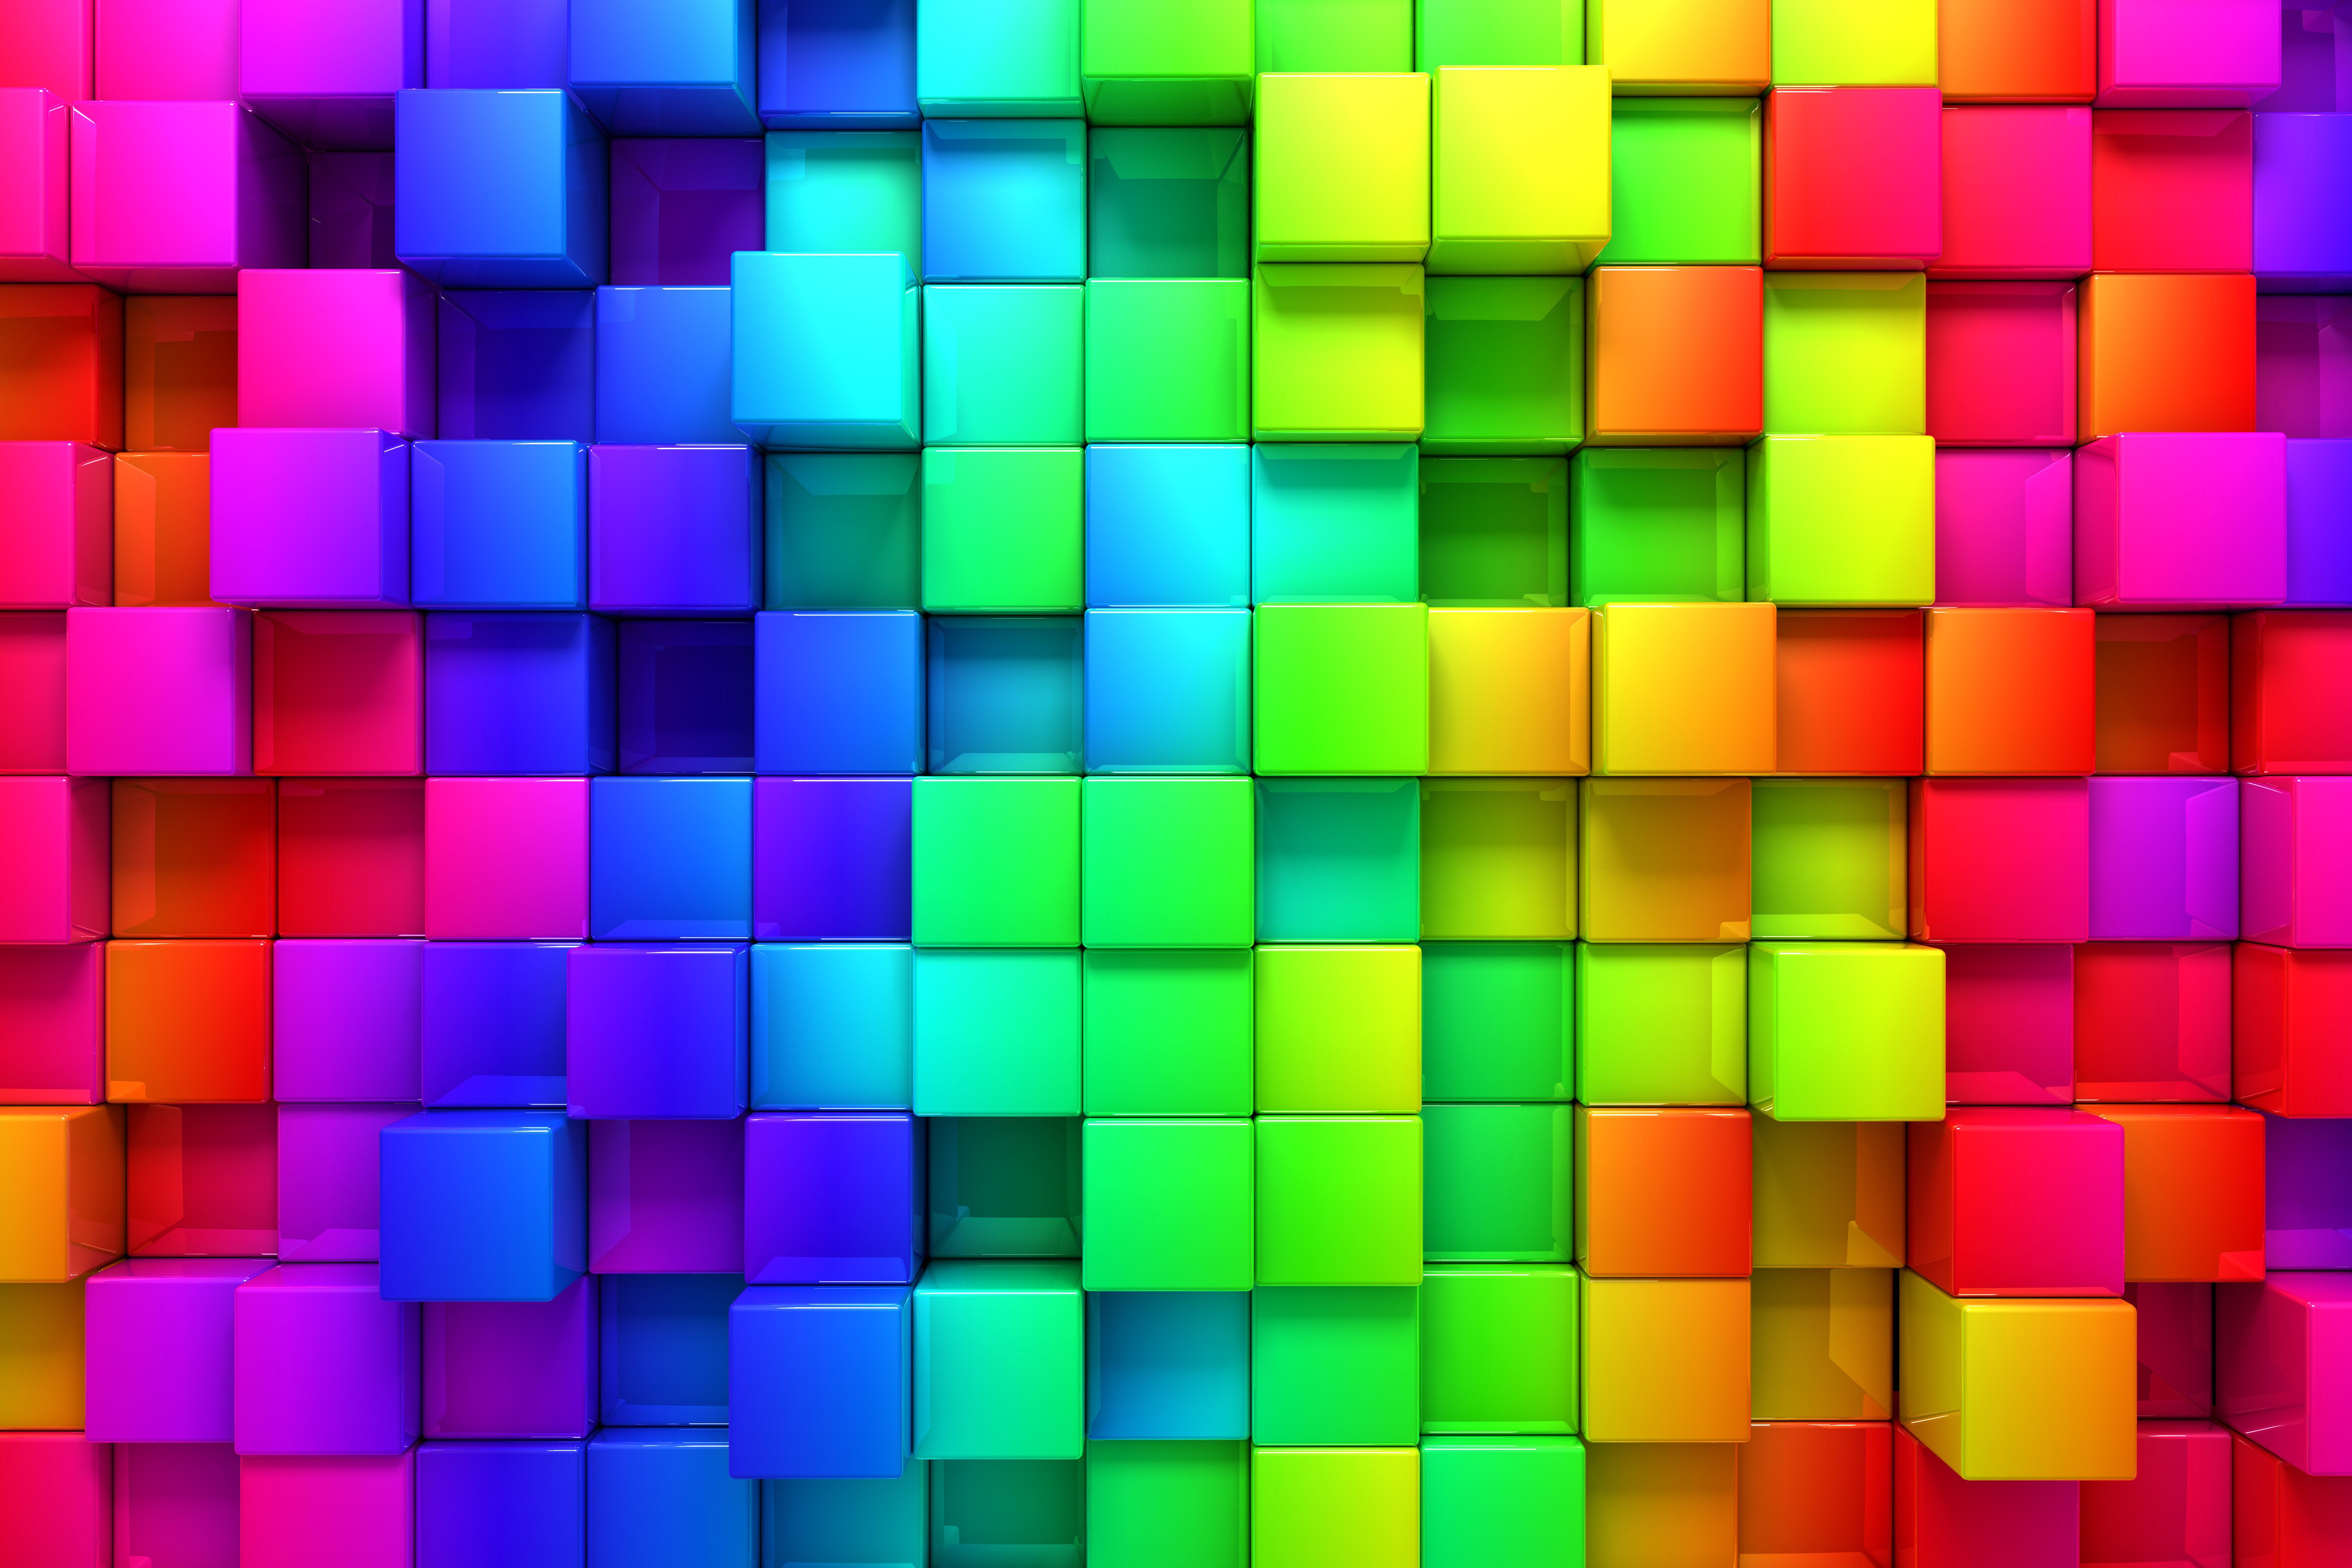 Colors Wallpapers 4 - 6000 X 4000 | stmed.net